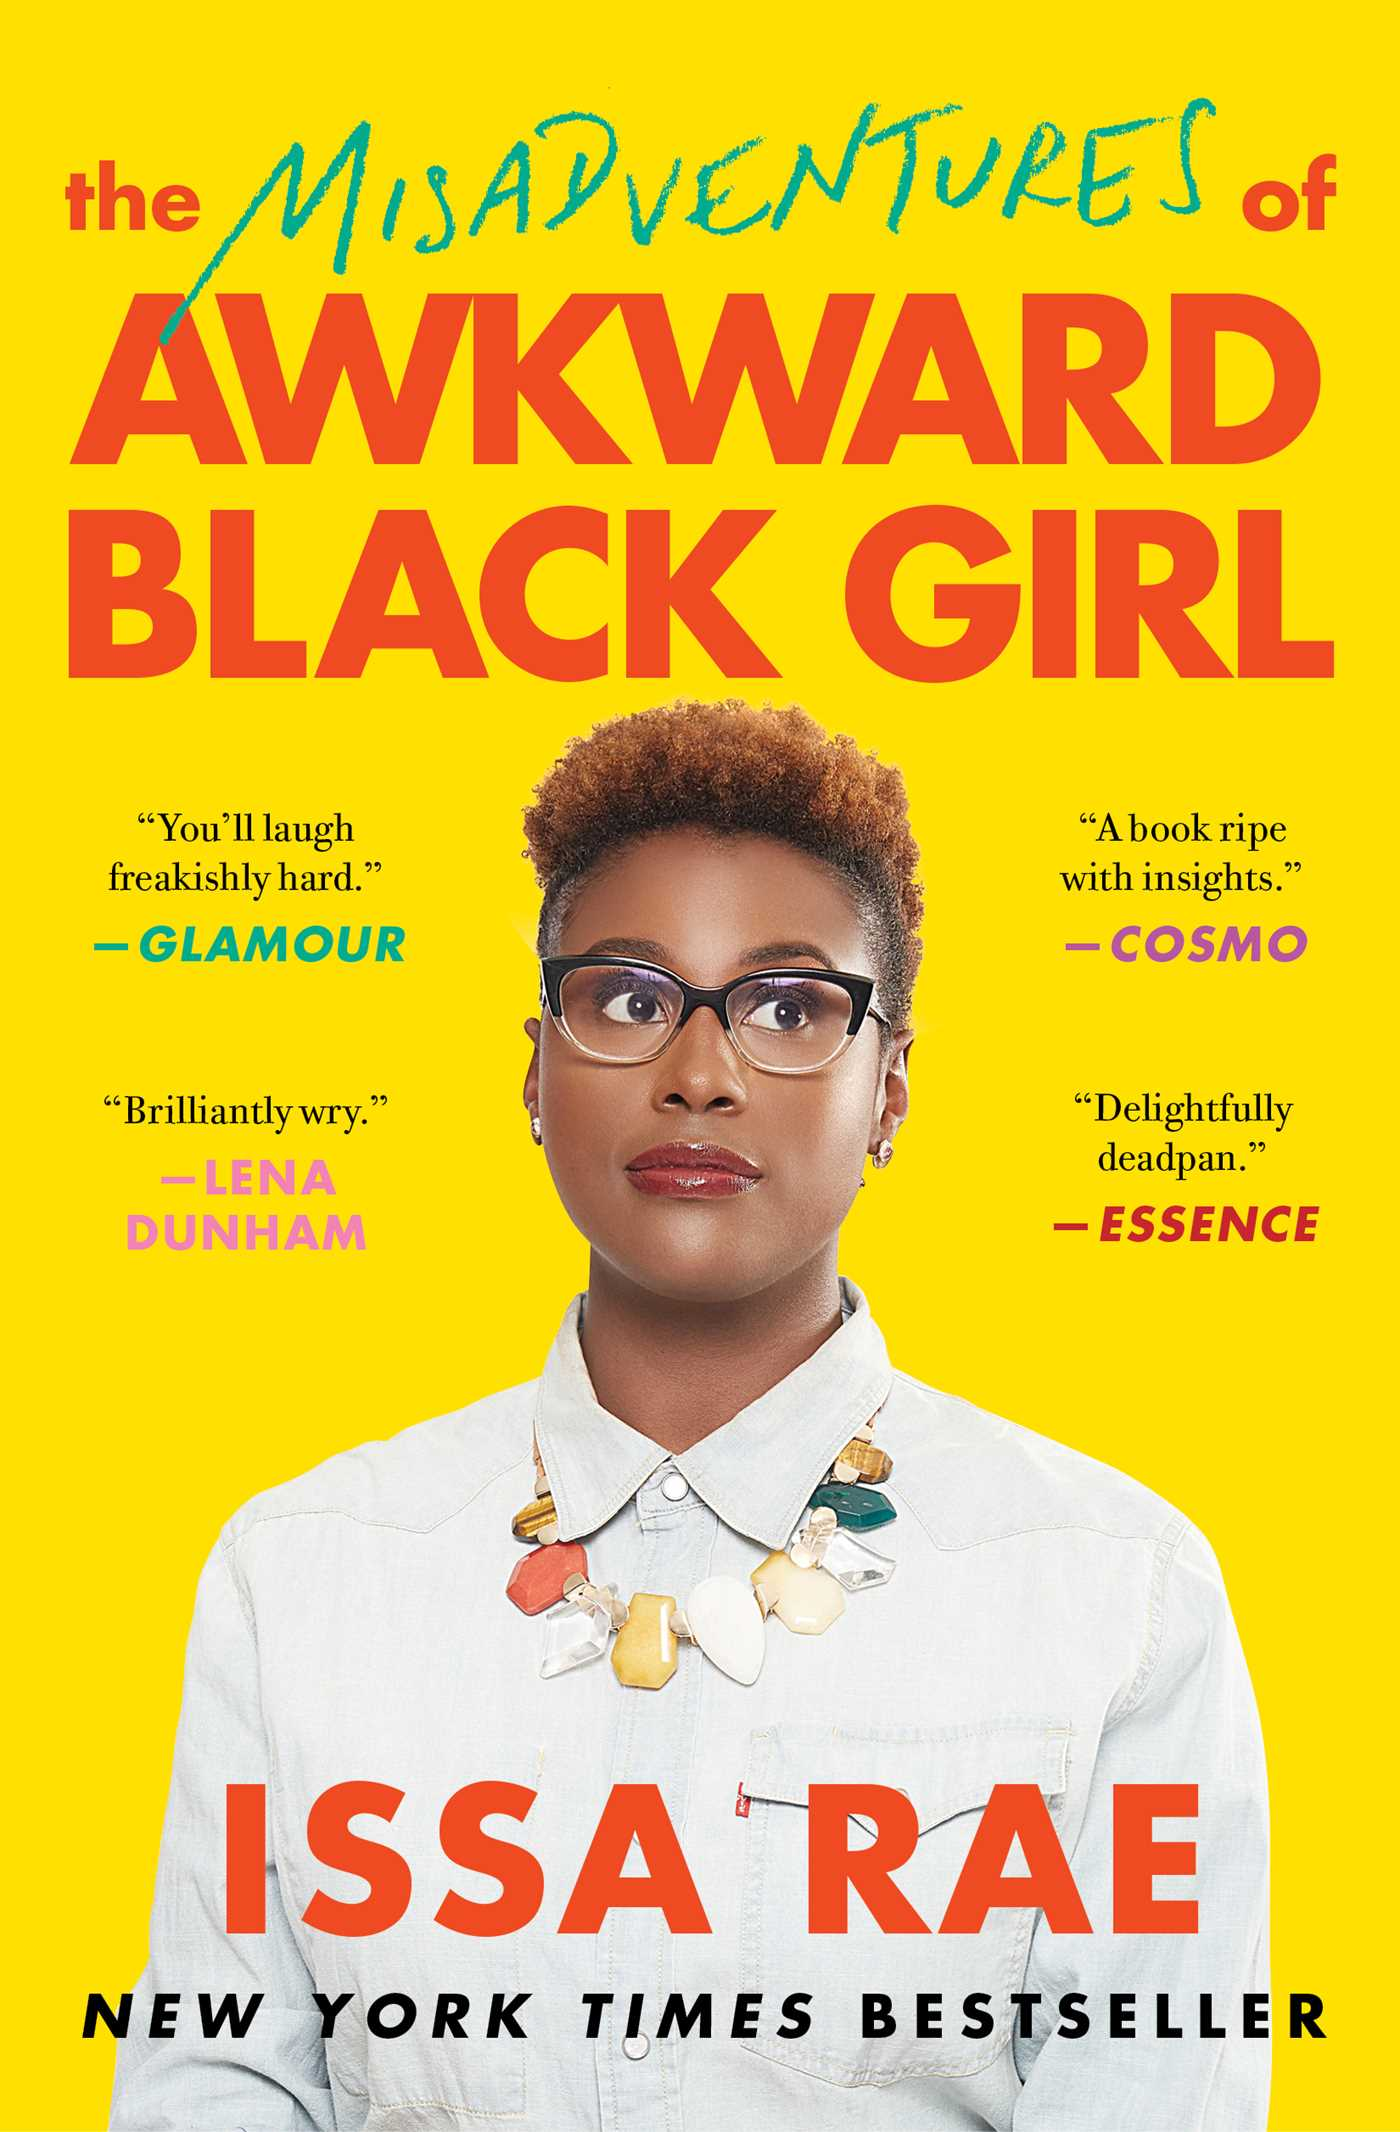 The Misadventures of Awkward Black Girl